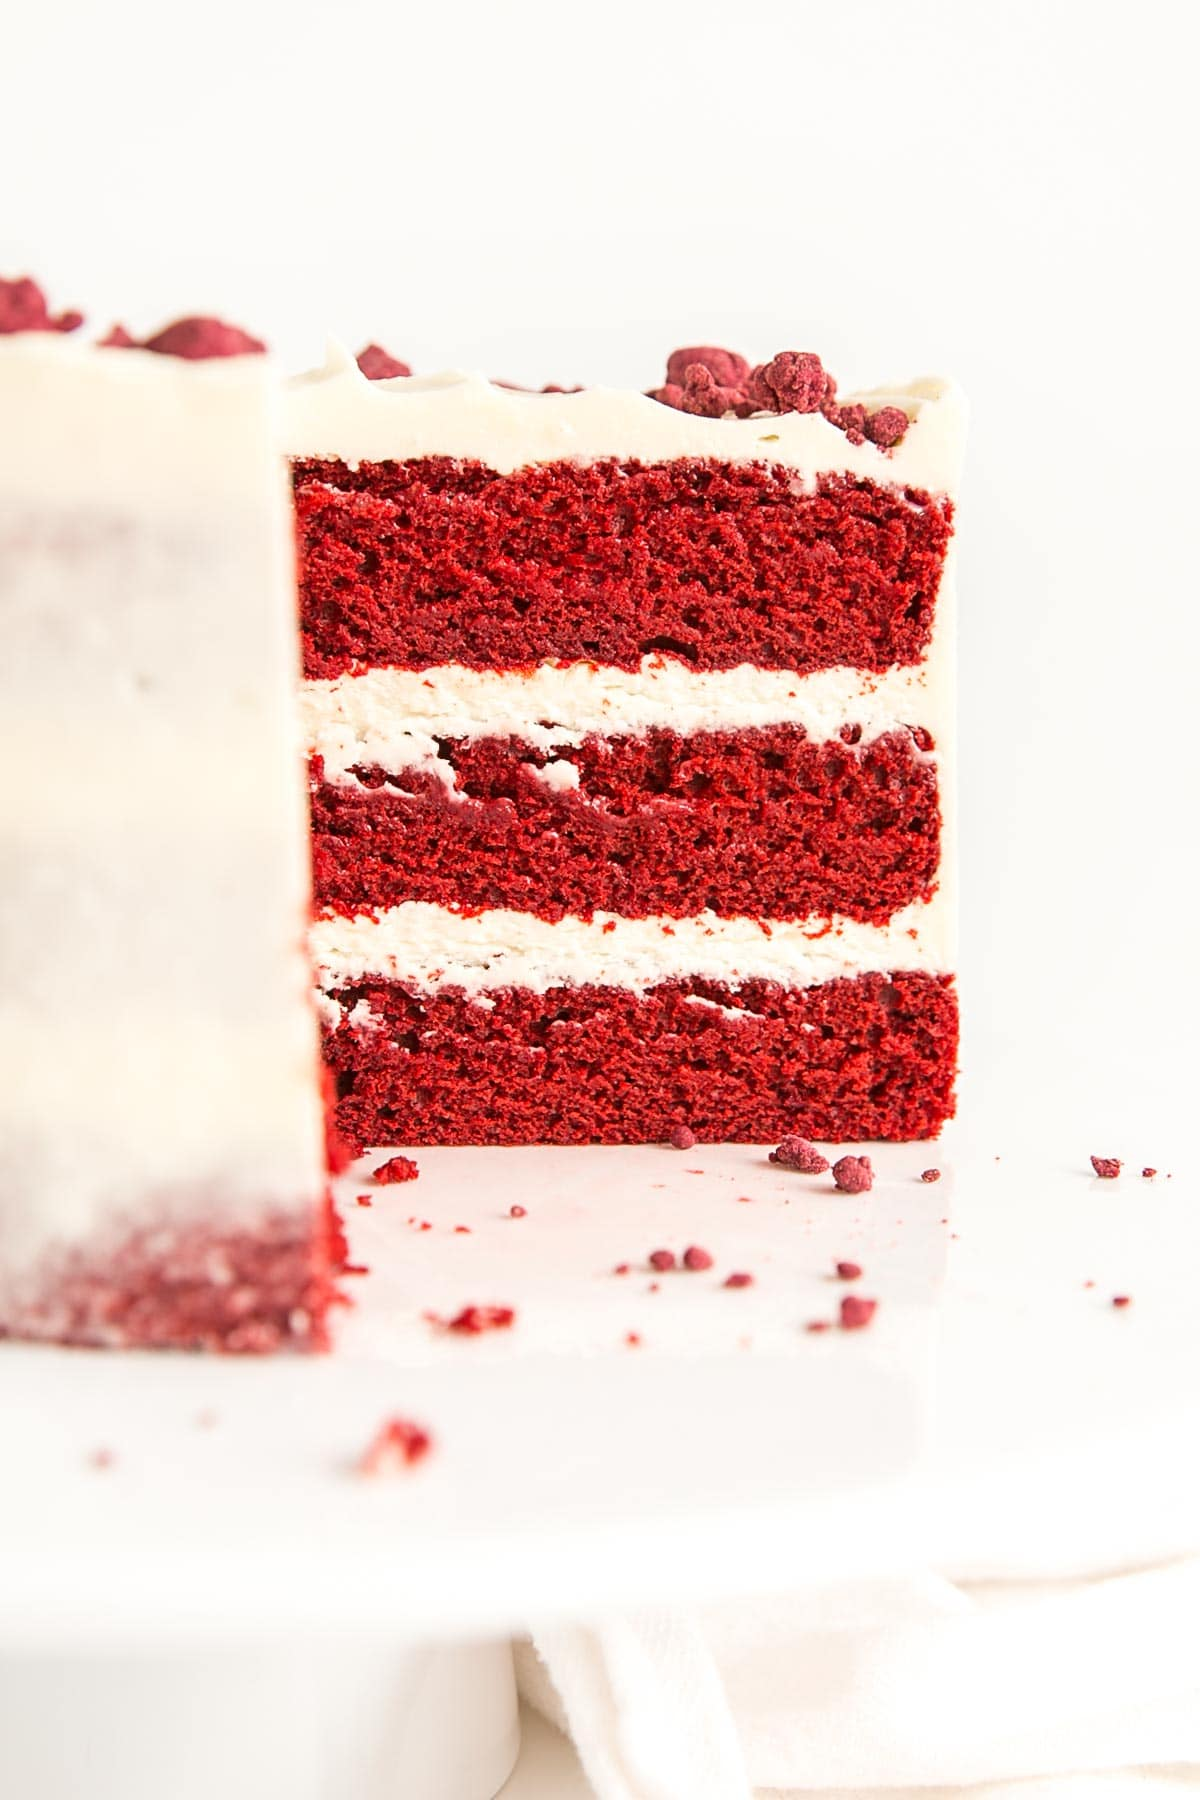 Cross section of cake showing three red velvet layers.